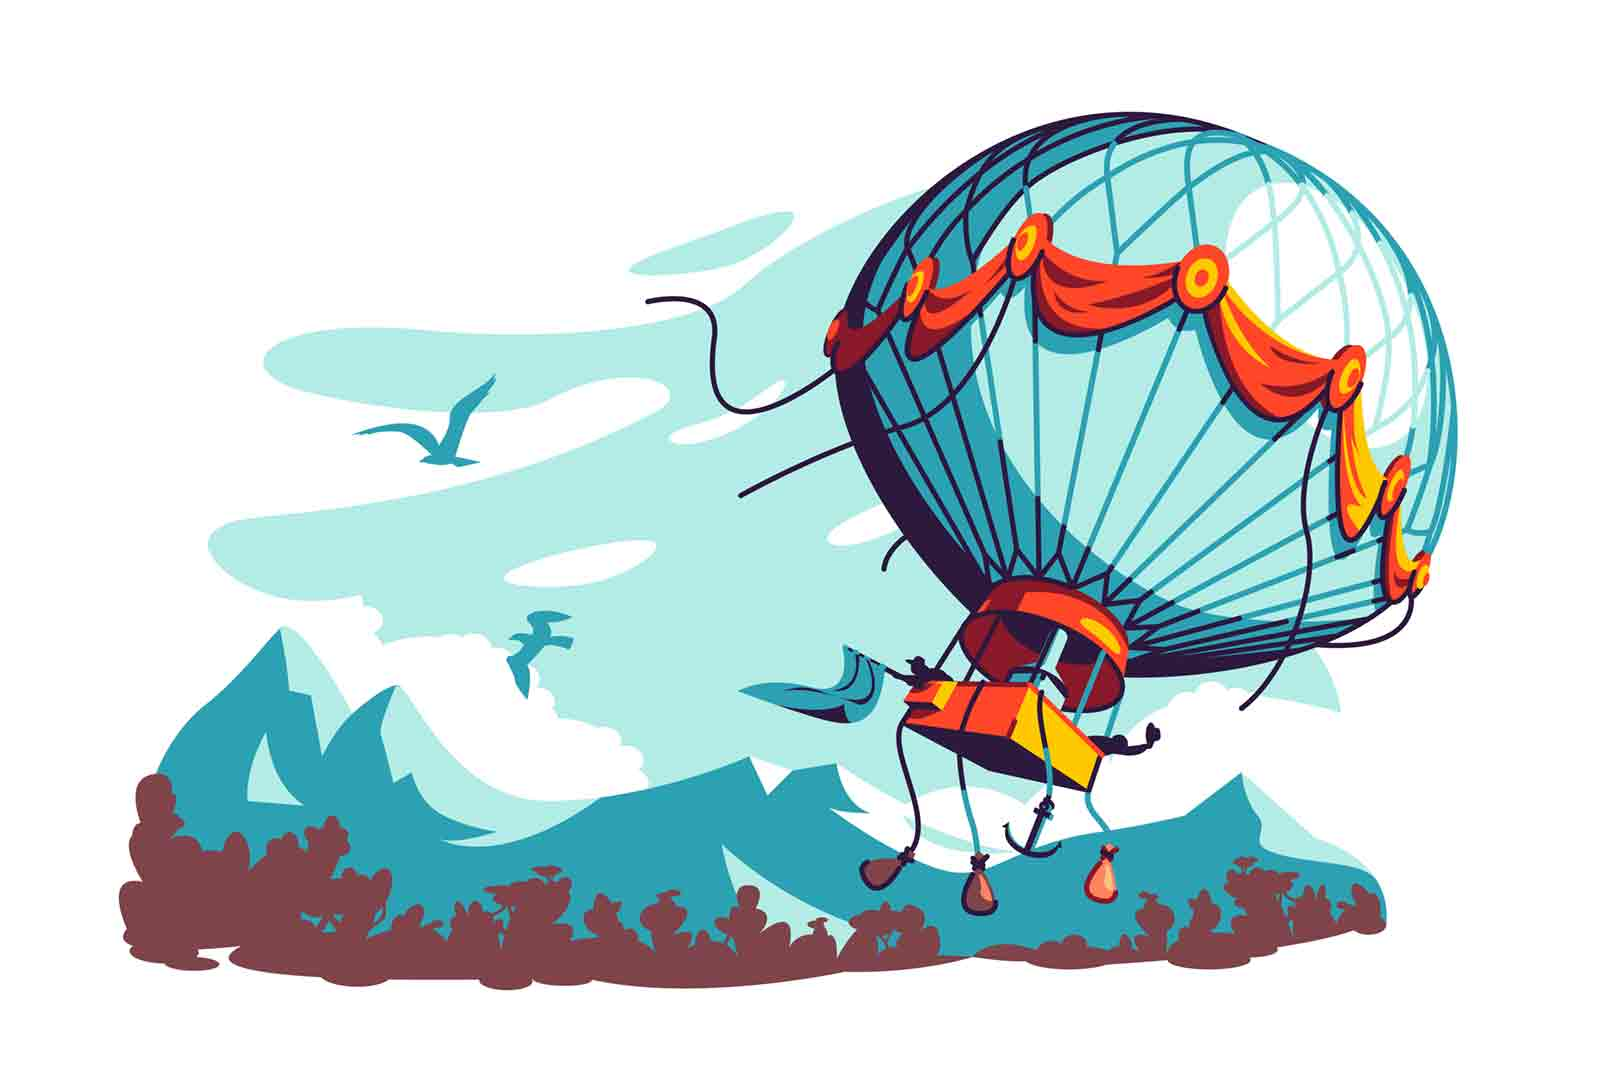 Hot air balloon flying in air vector illustration. Romantic flight in mountains with view flat style. Adventure, nature, landscape concept